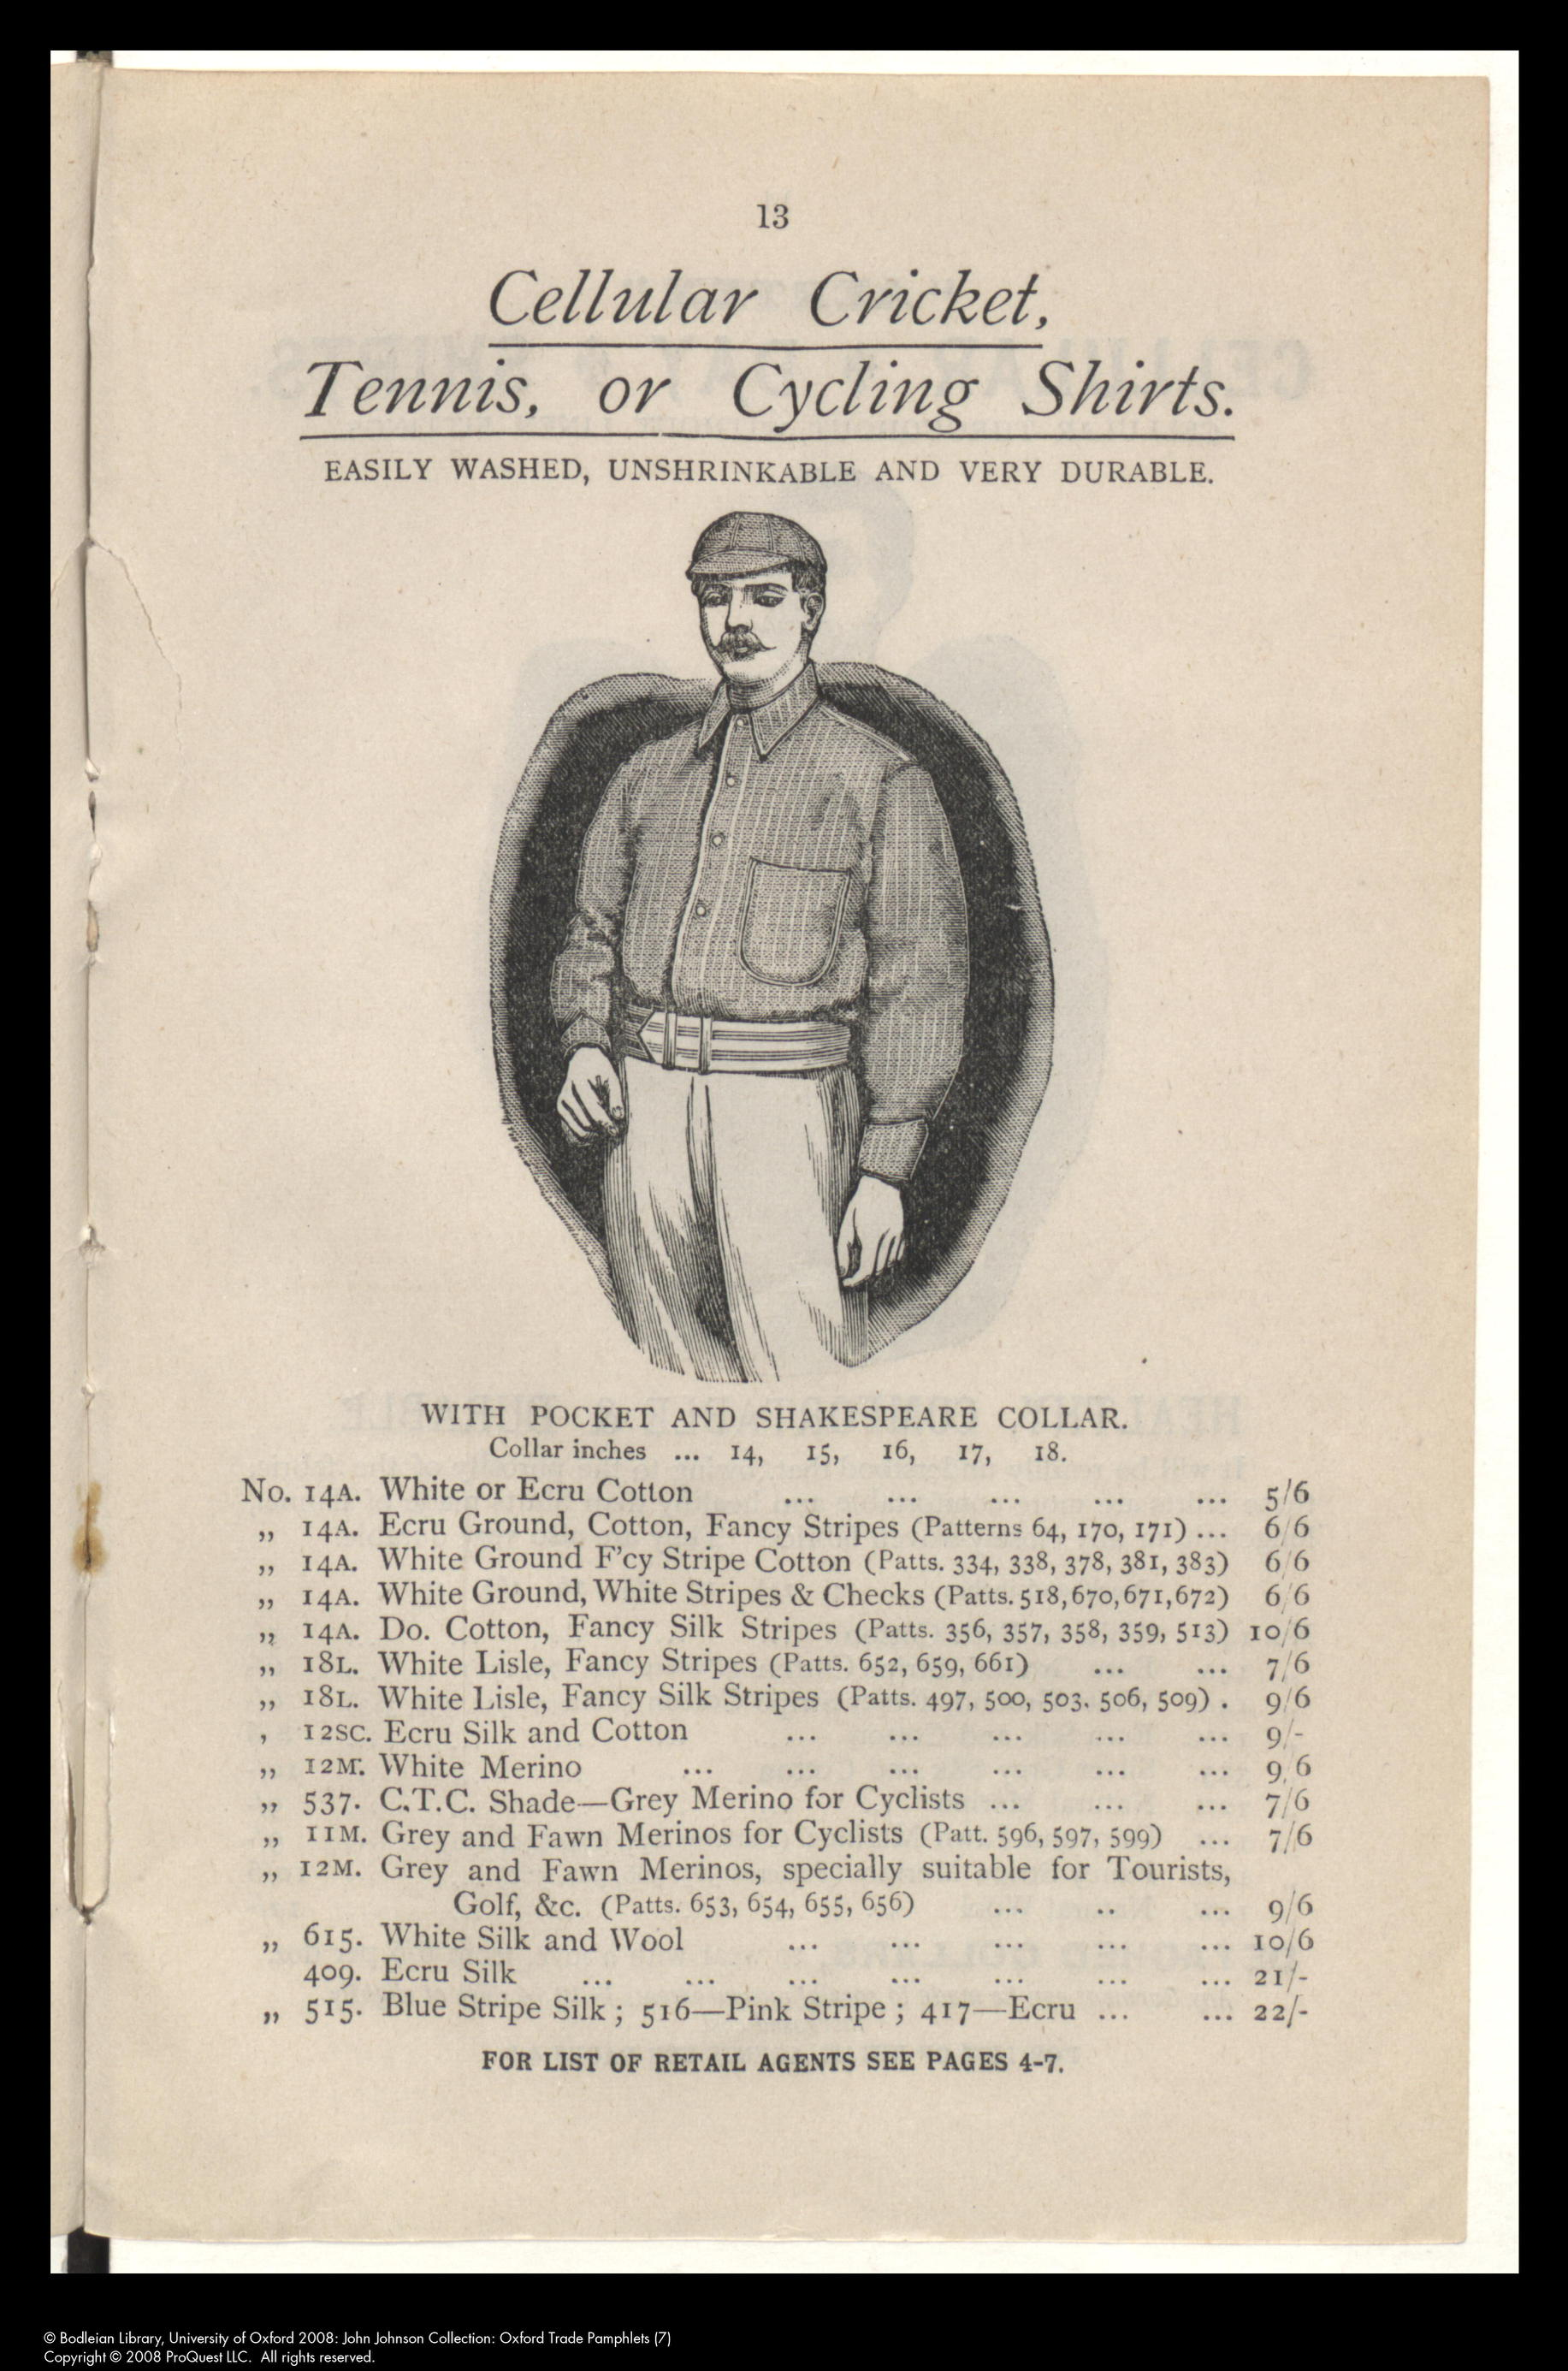 Cellular cloth and clothing catalogue showing Shakespeare collar, 1892